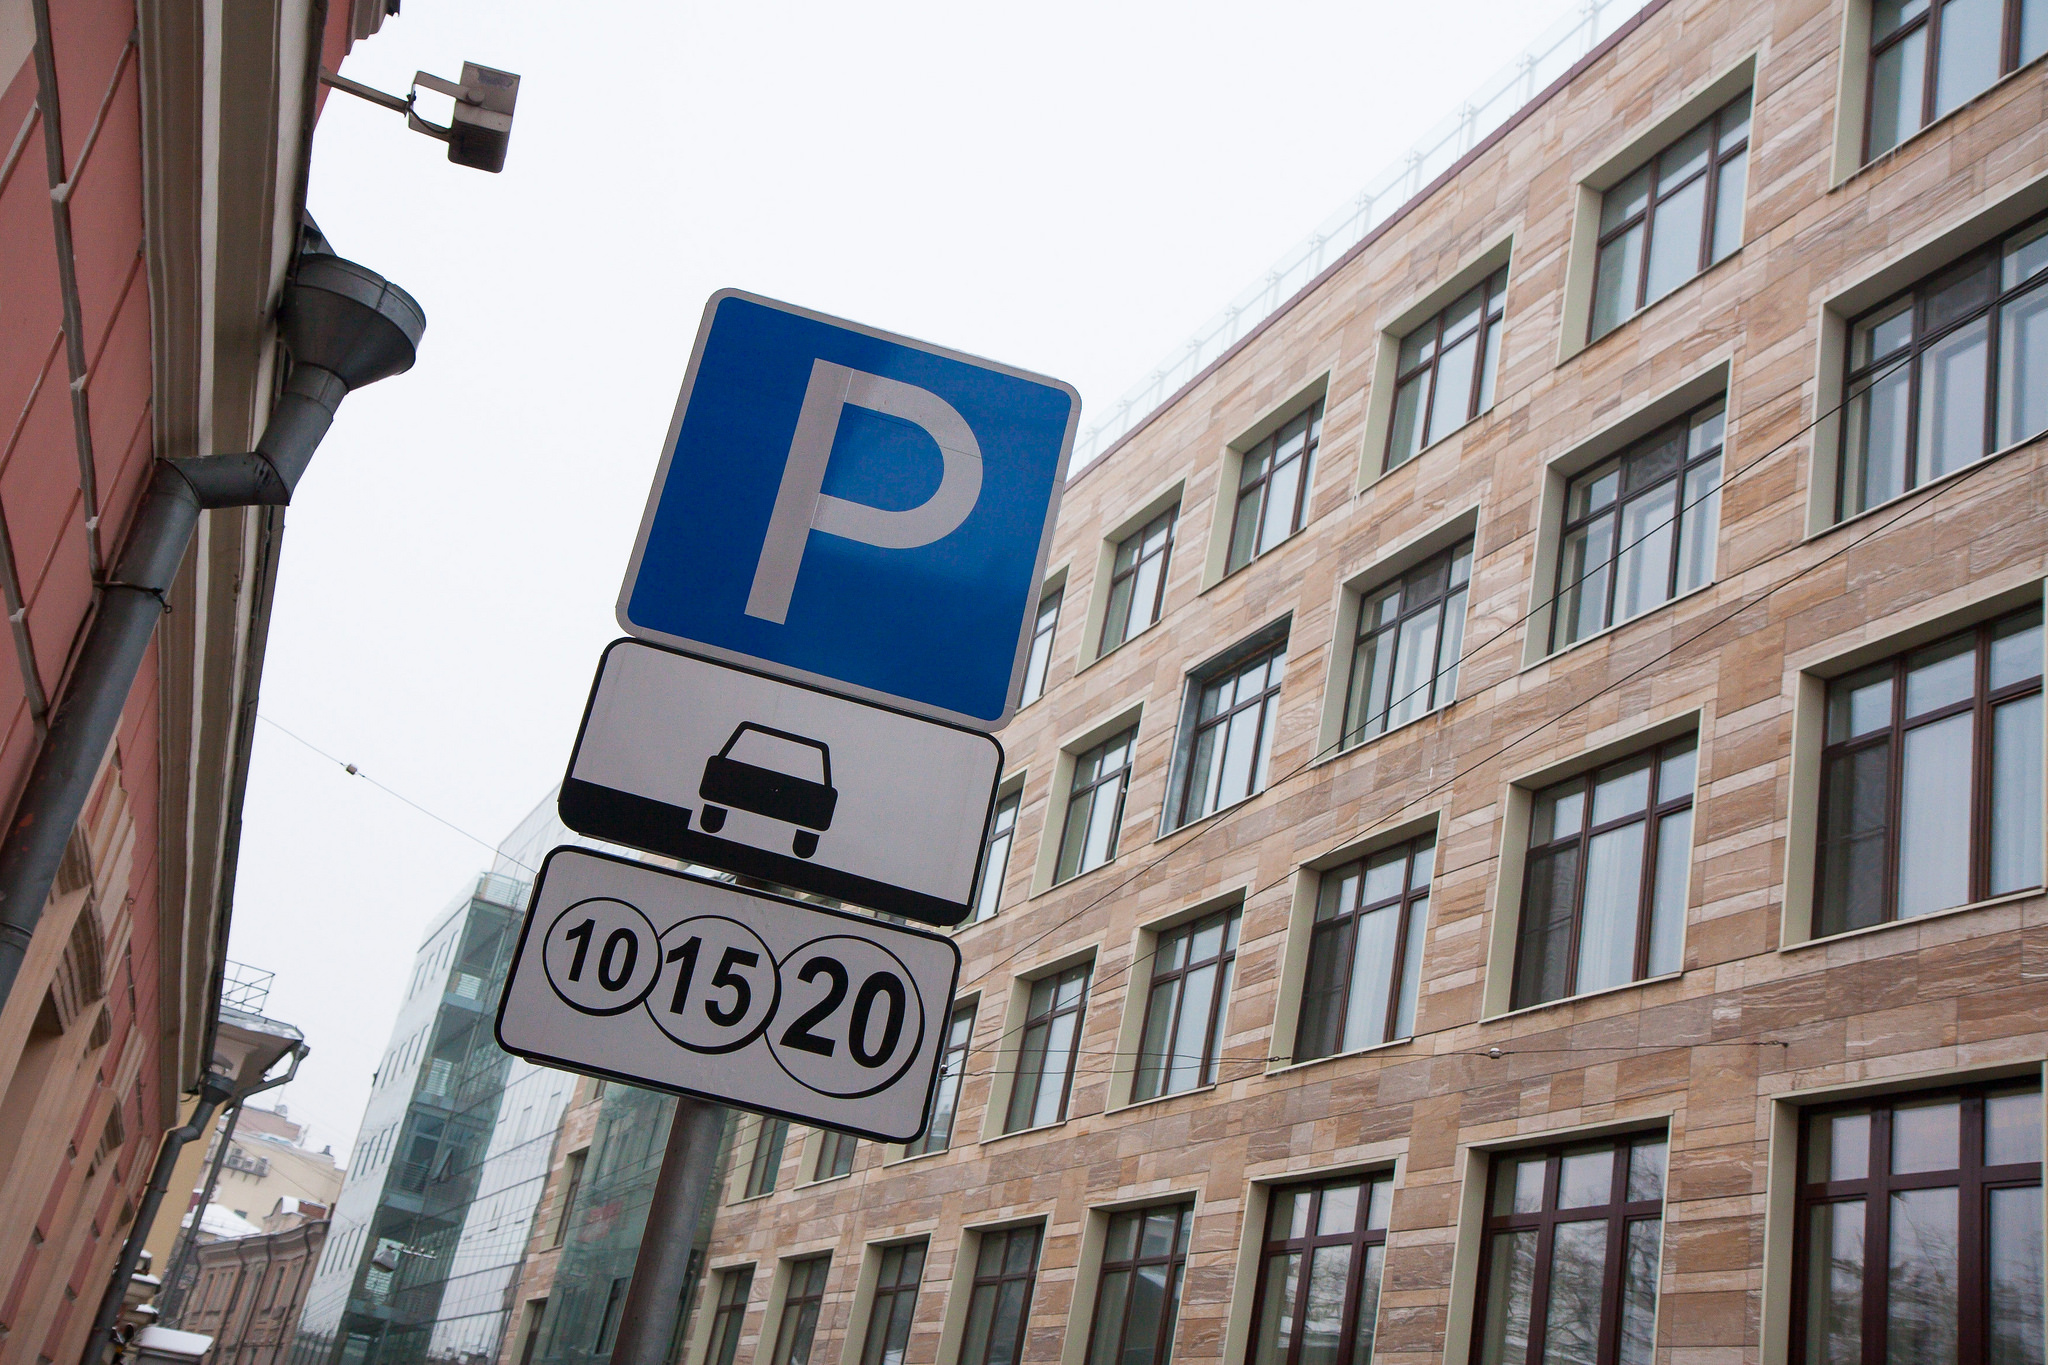 Paid parking subscriptions will rise in price